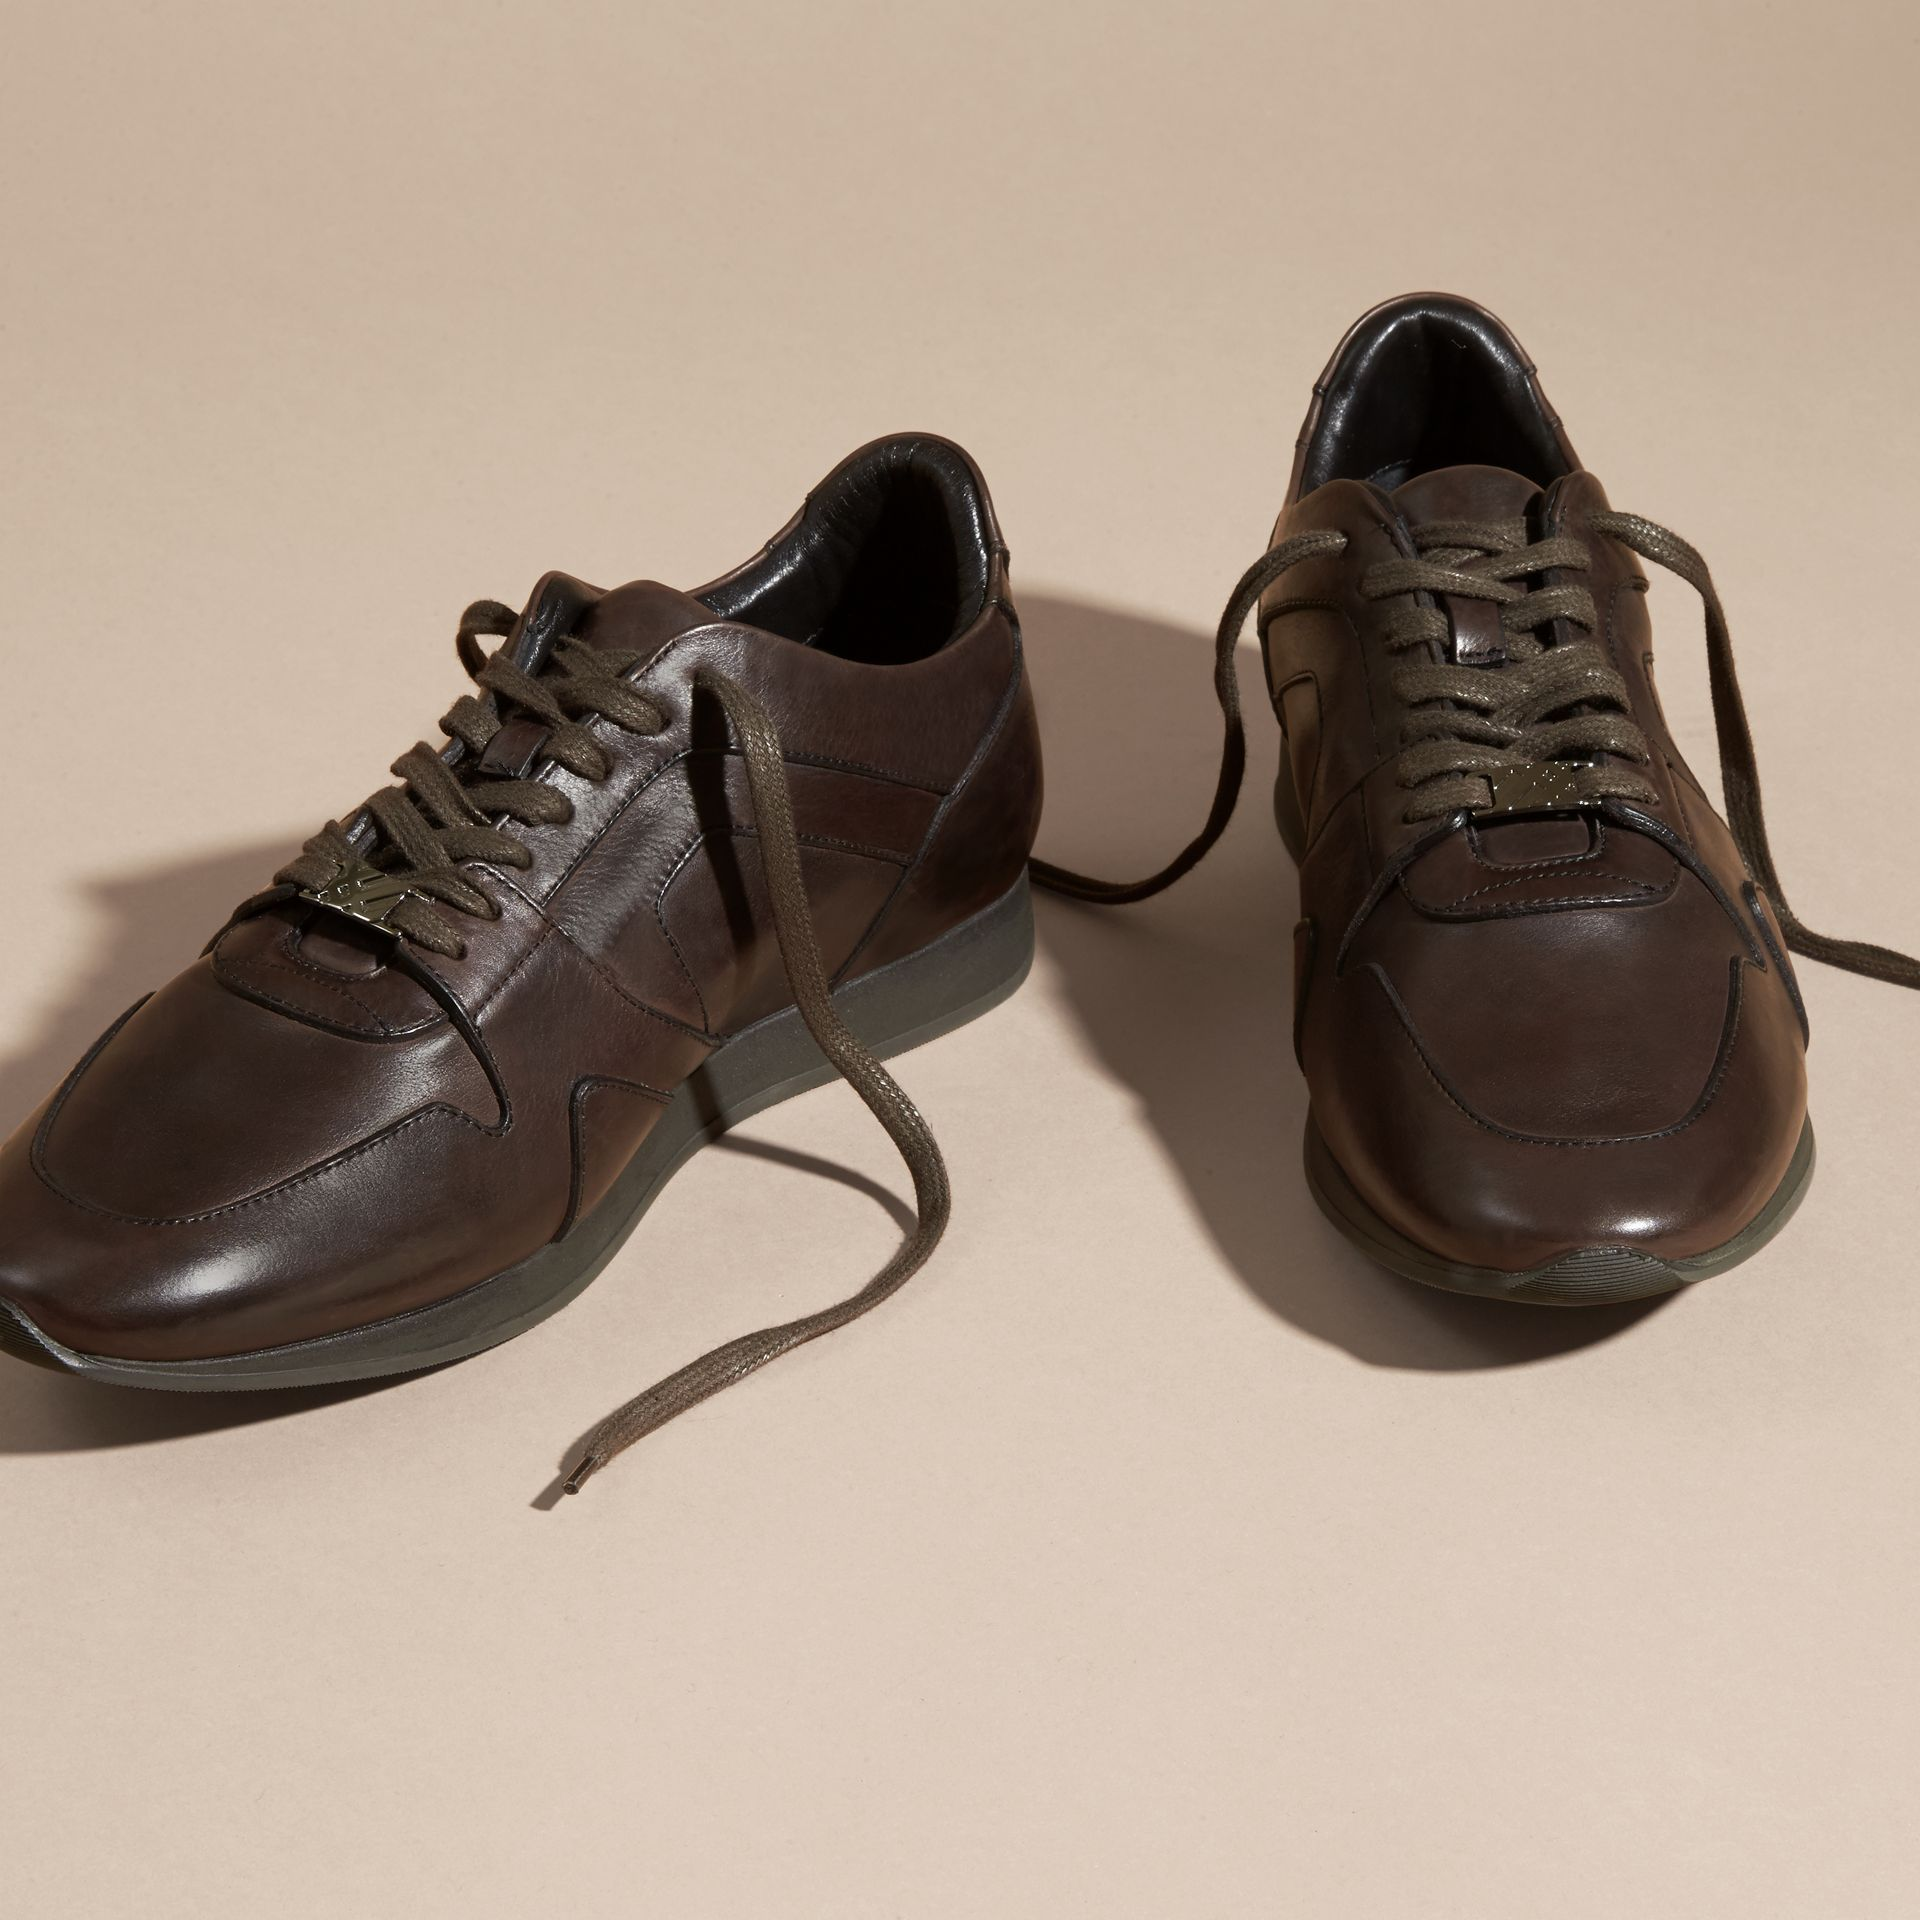 Peppercorn The Field Sneaker in Leather Peppercorn - gallery image 3